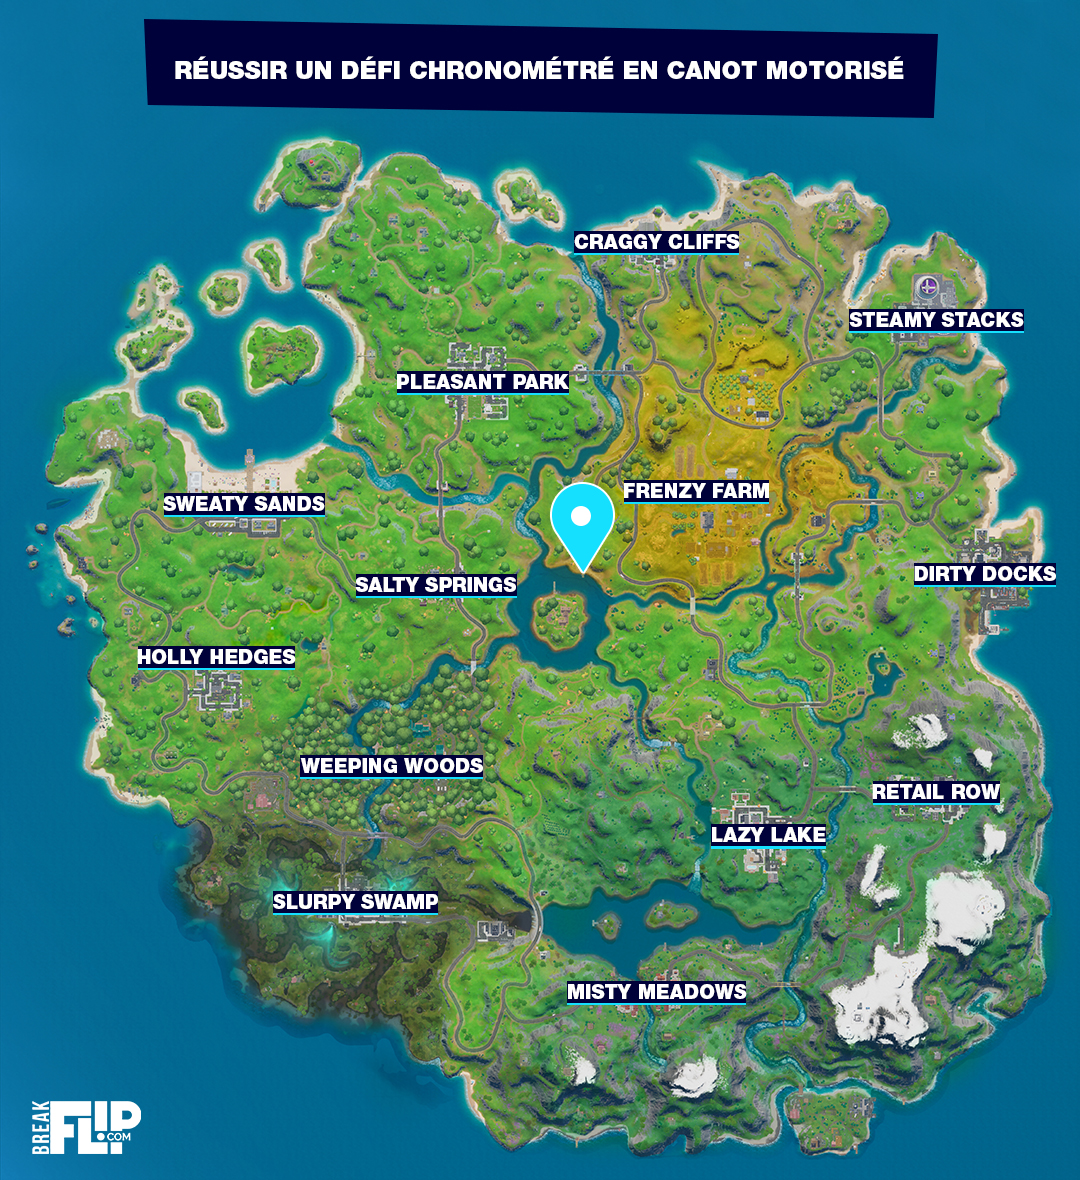 fortnite-defi-chronometre-canot-motorise